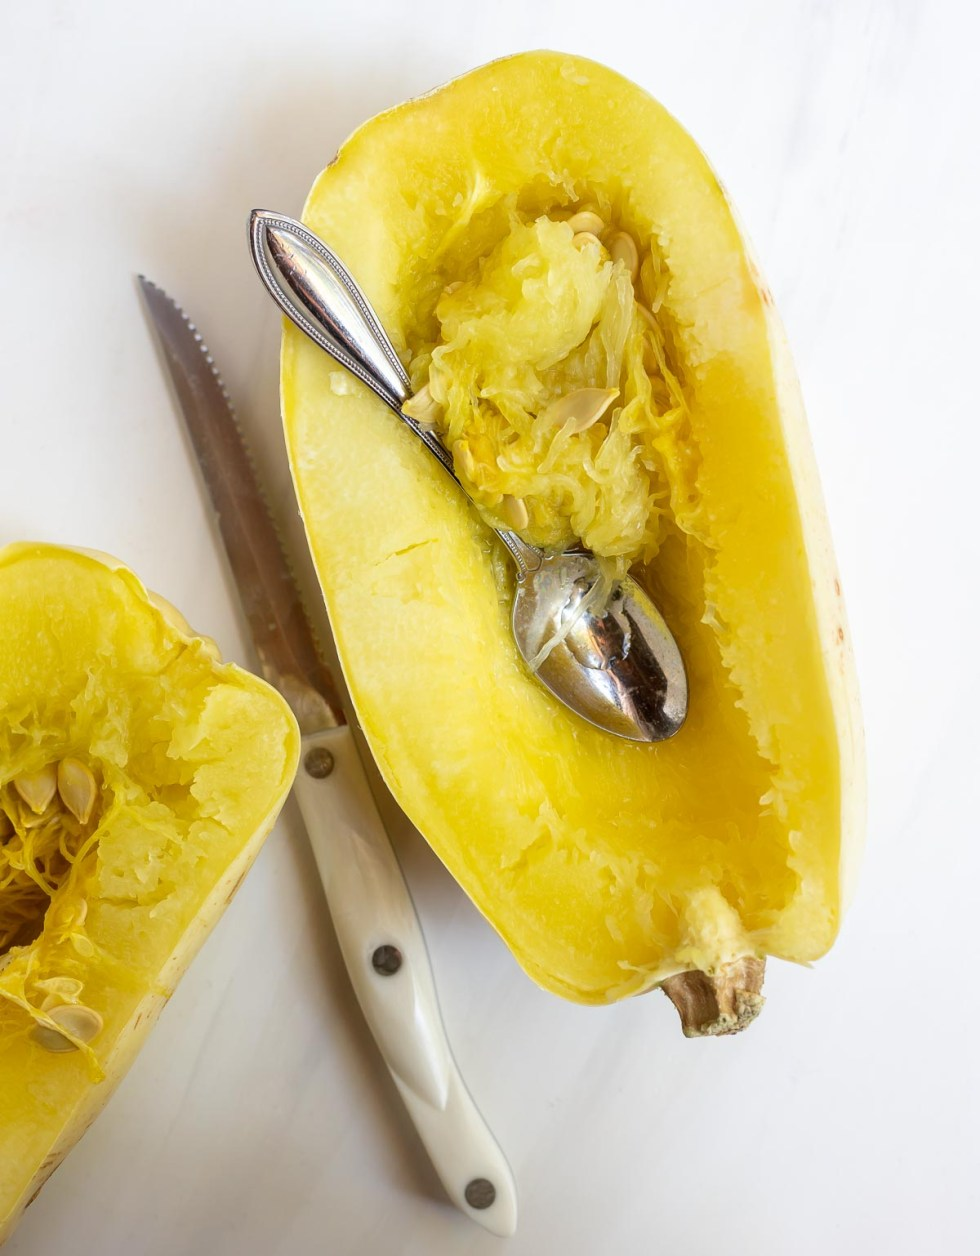 cooked spaghetti squash sliced in half. lengthwise